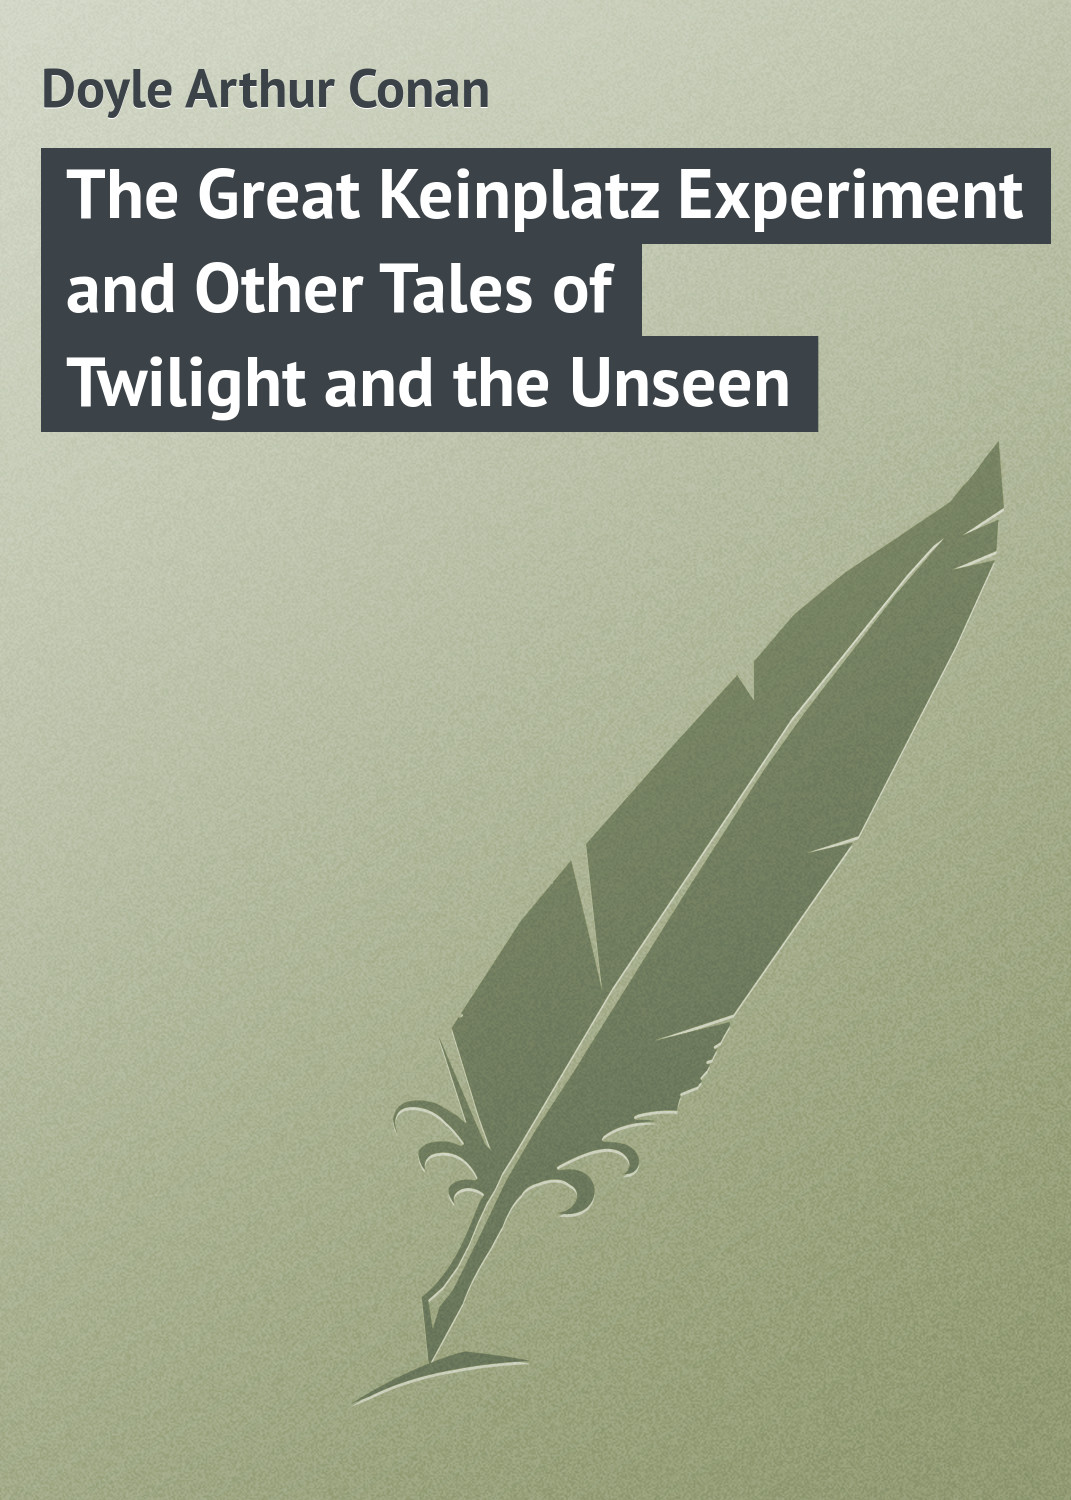 Doyle Arthur Conan The Great Keinplatz Experiment and Other Tales of Twilight and the Unseen poe e the fall of the house of usher and other tales